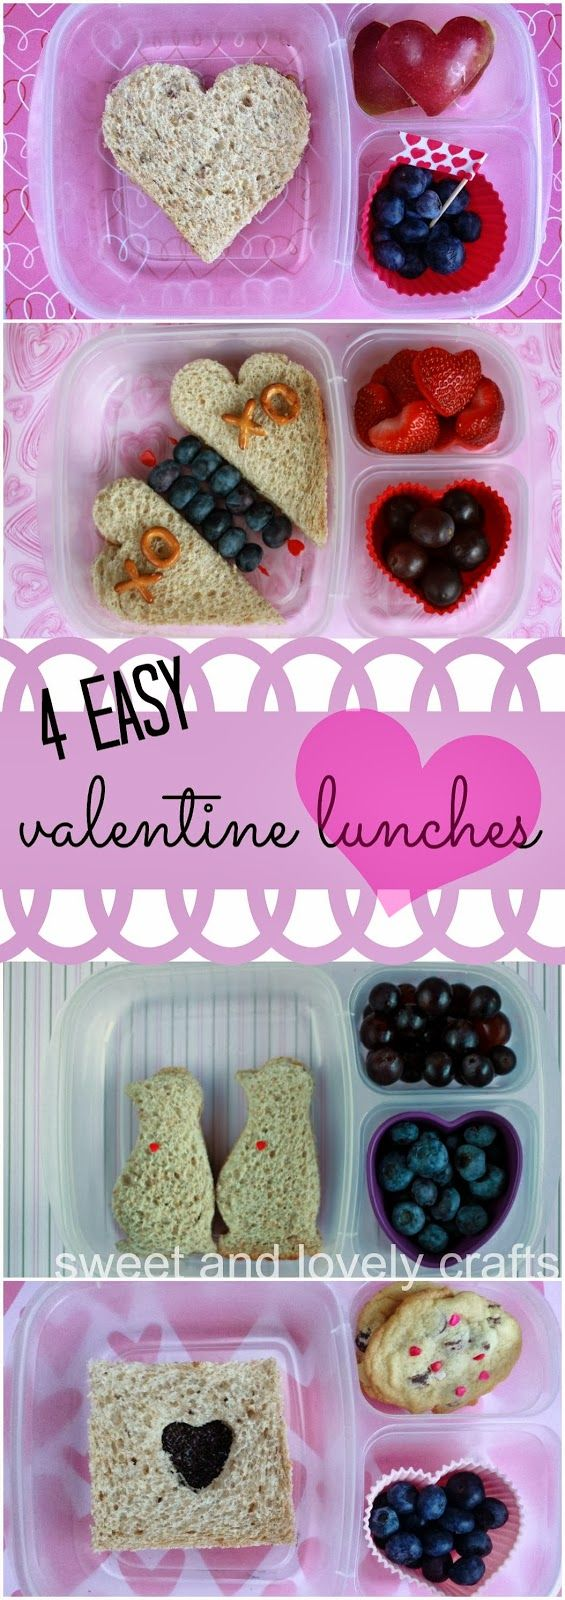 4 EASY Valentine's Lunchbox Ideas | packed in @EasyLunchboxes containers